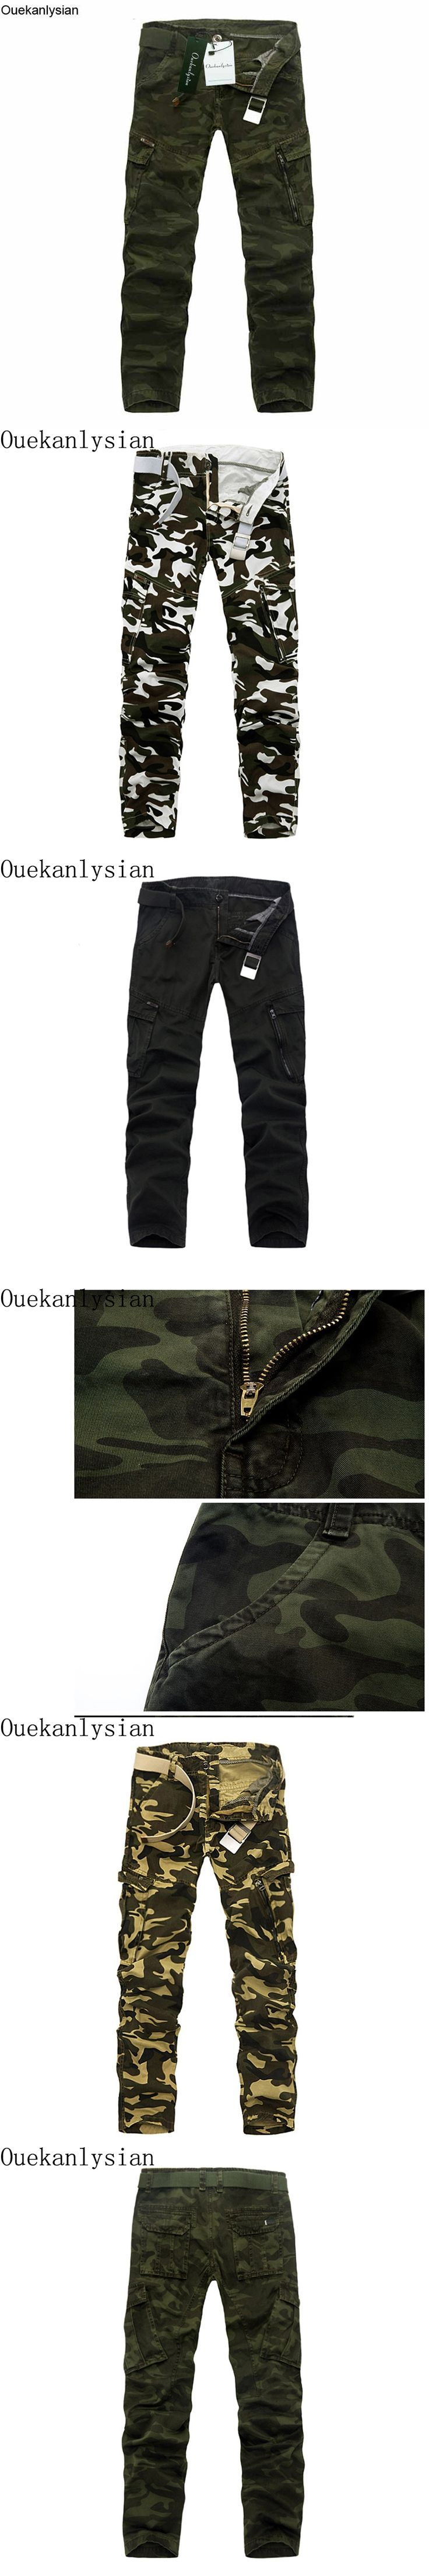 Ouekanlysian Multi Pocket Military Pants For Men Camouflage Army Camo Pants Casual Loose Baggy Camo Cargo Pants Combat Trousers